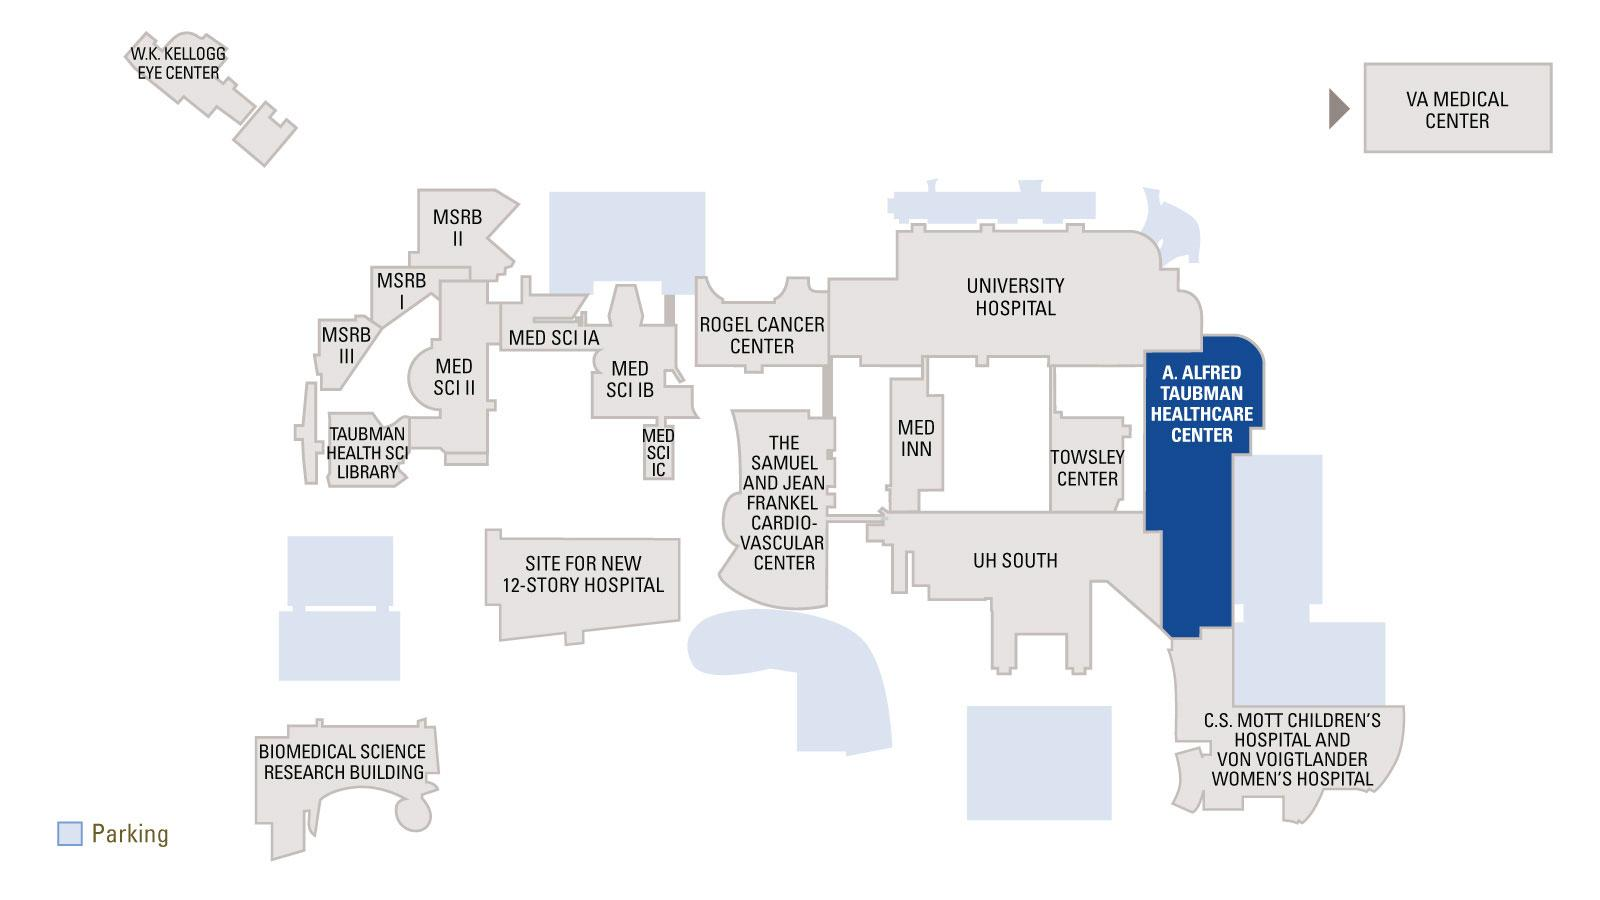 Map of Medical Campus with Taubman Healthcare Center highlighted in blue on the map